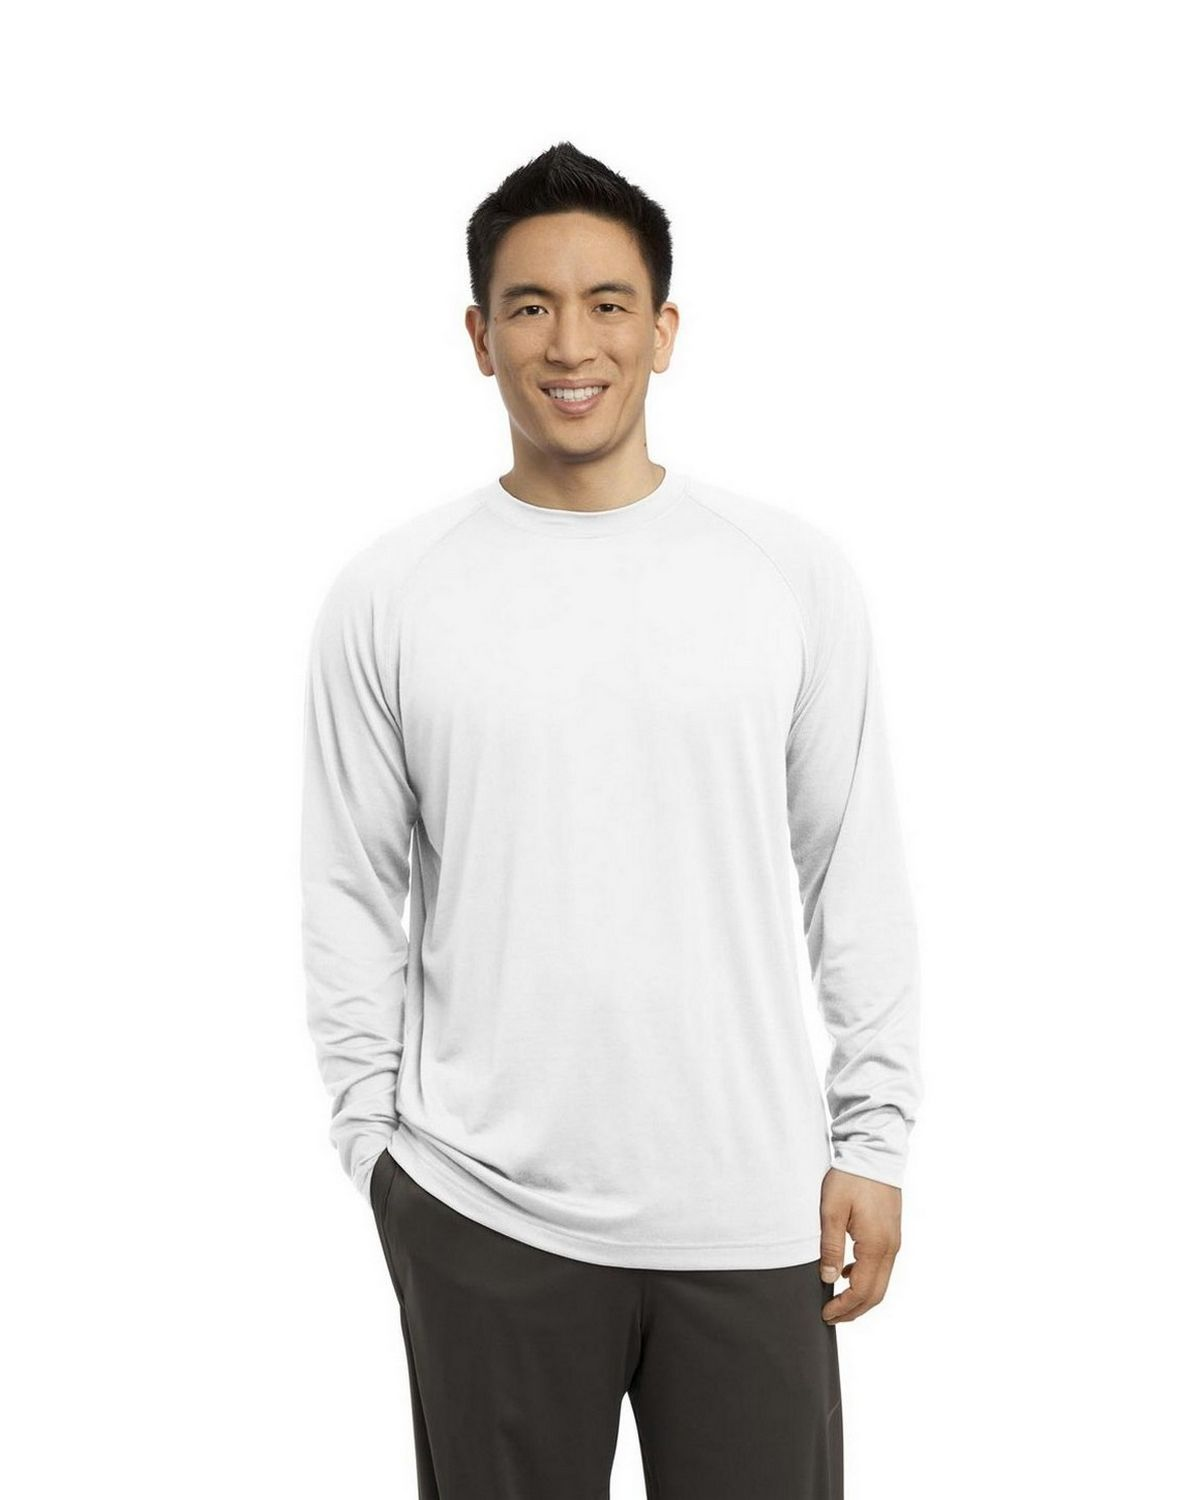 Sport Tek St700ls Long Sleeve Ultimate Performance T Shirt Athletic apparel is usually built just on function—but sometimes, you come across a brand that combines function with fashion. sport tek st700ls men s long sleeve ultimate performance t shirt